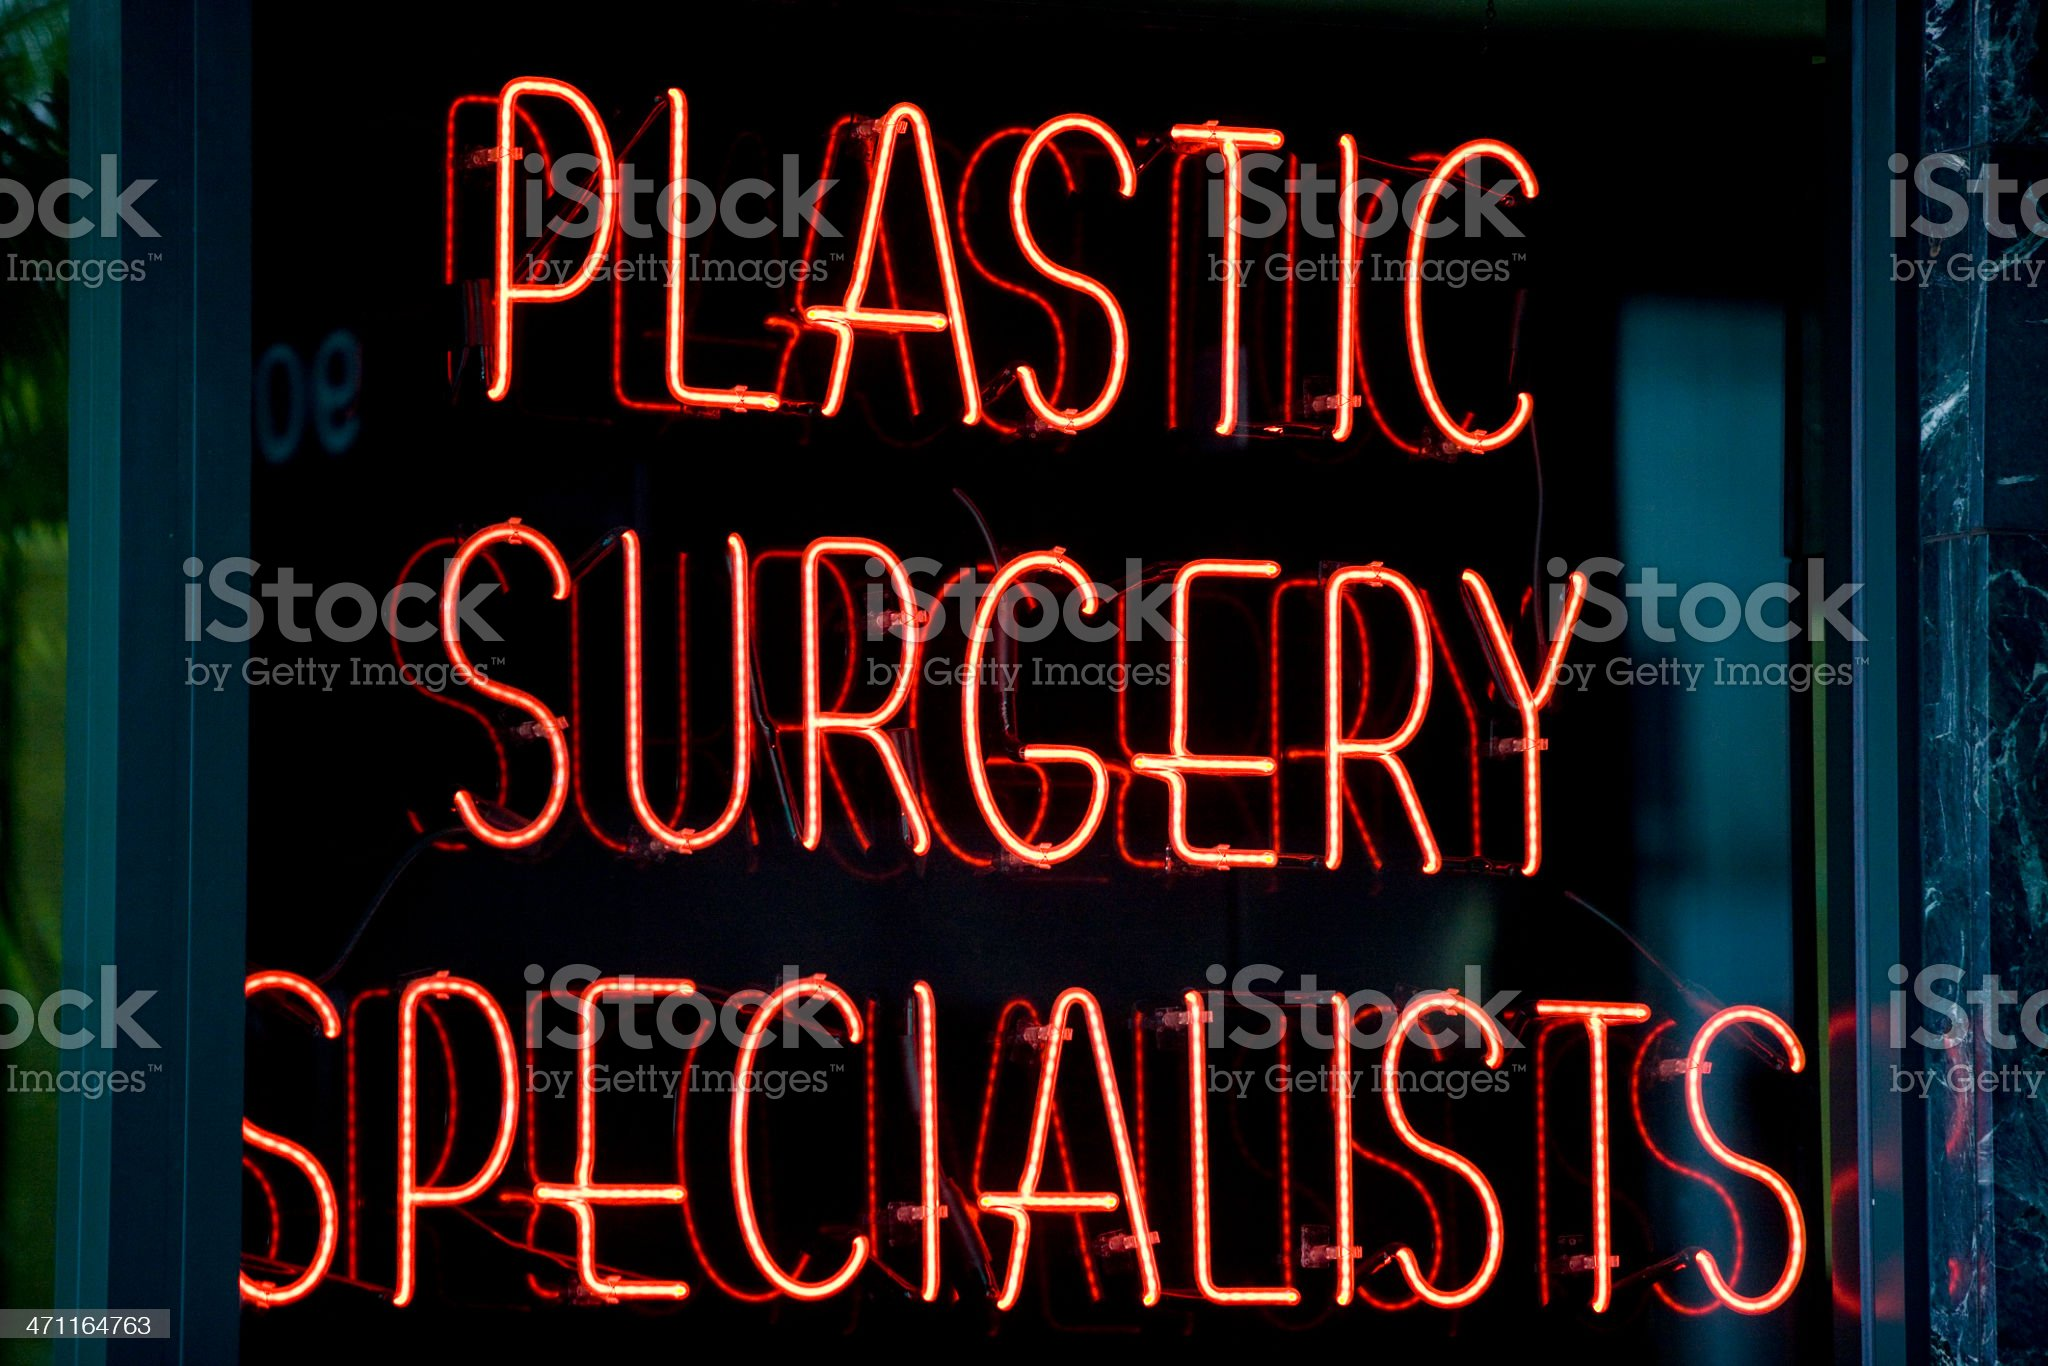 Plastic surgery specialists sign royalty-free stock photo